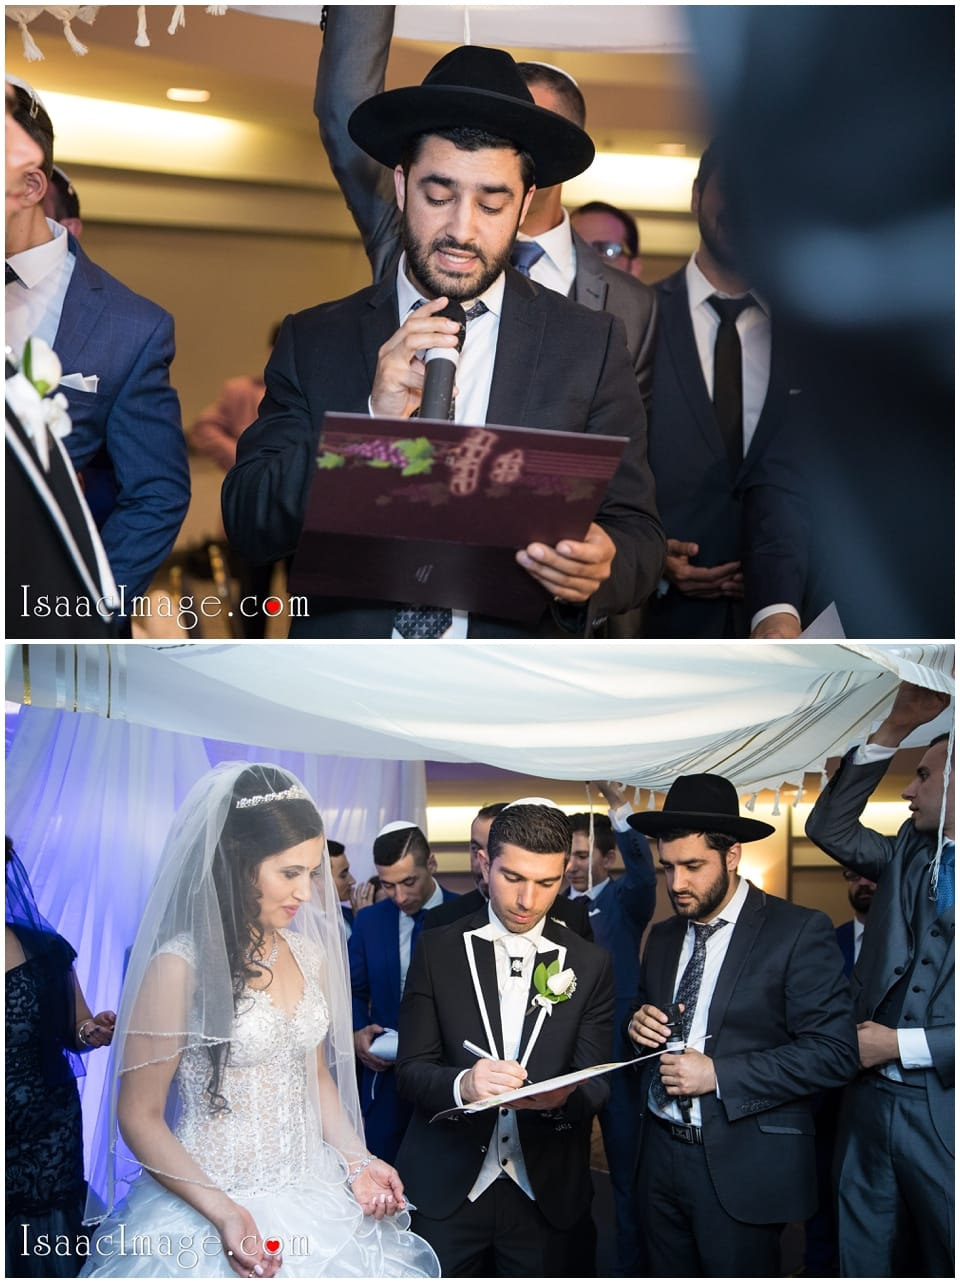 Toronto Biggest Bukharian Jewish Wedding David and Juliet_3790.jpg